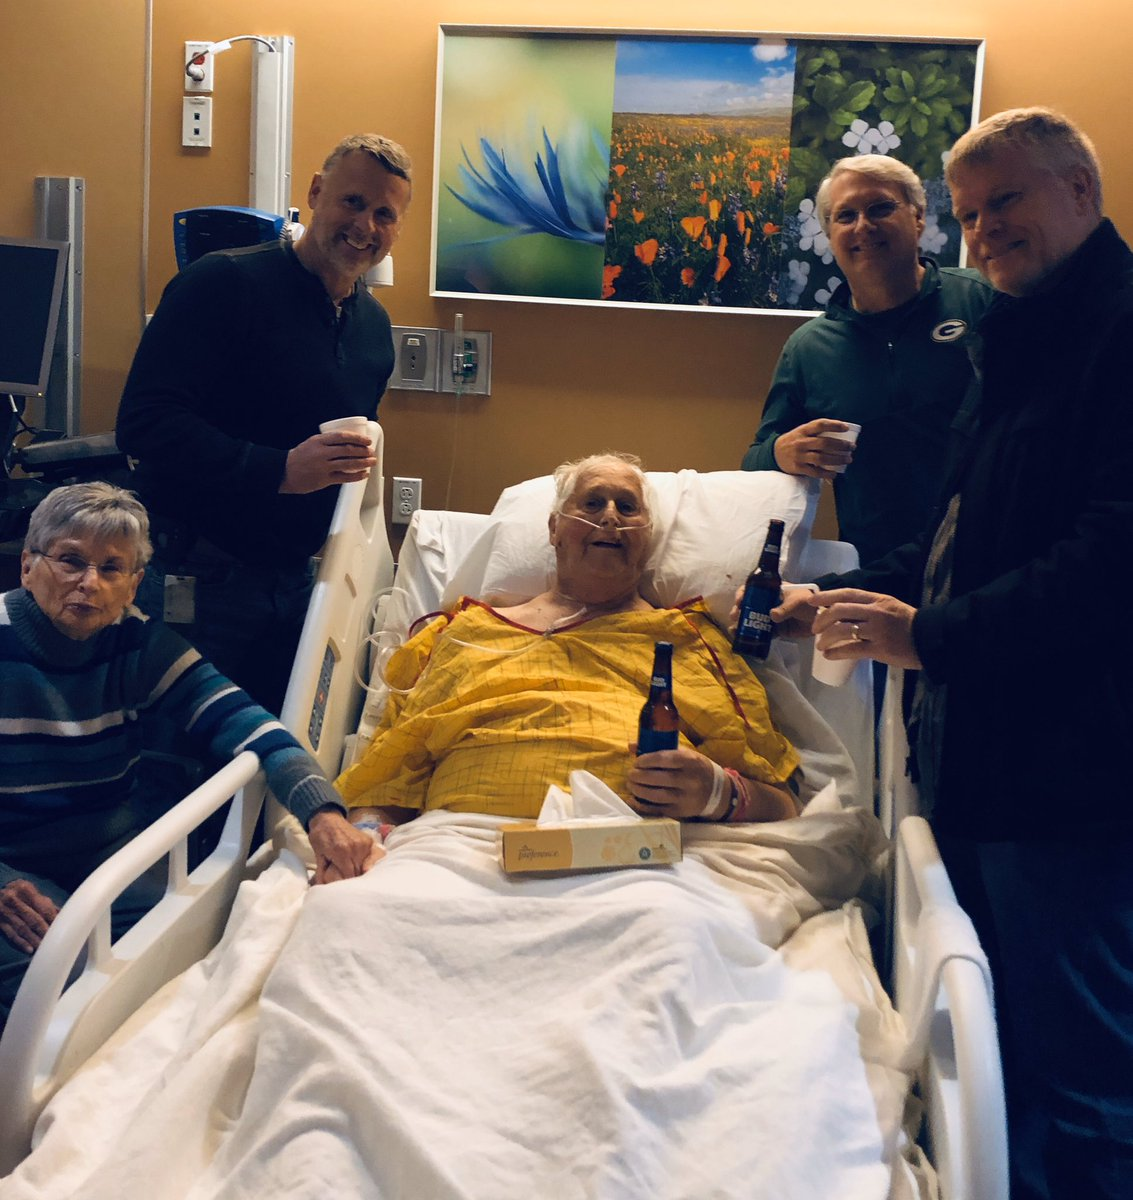 A dying man wanted one last beer with his sons. The moment resonated with thousands